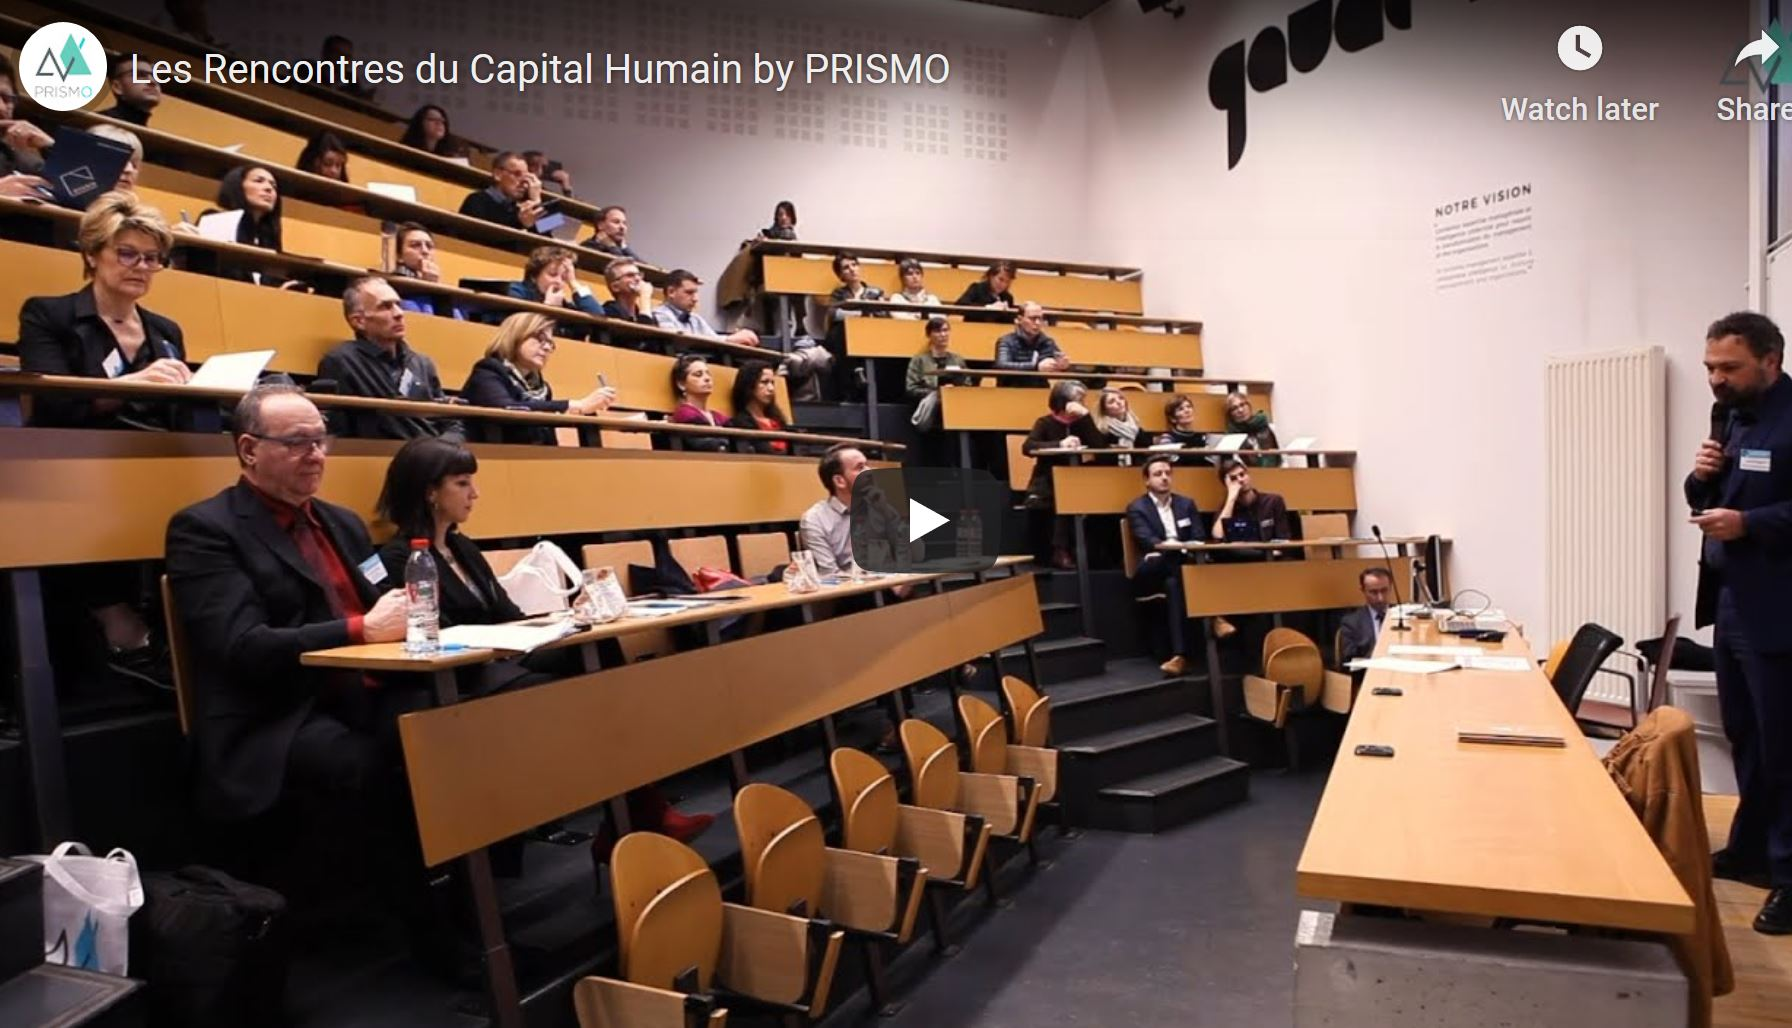 les-rencontres-du-capital-humain-by-prismo-activity